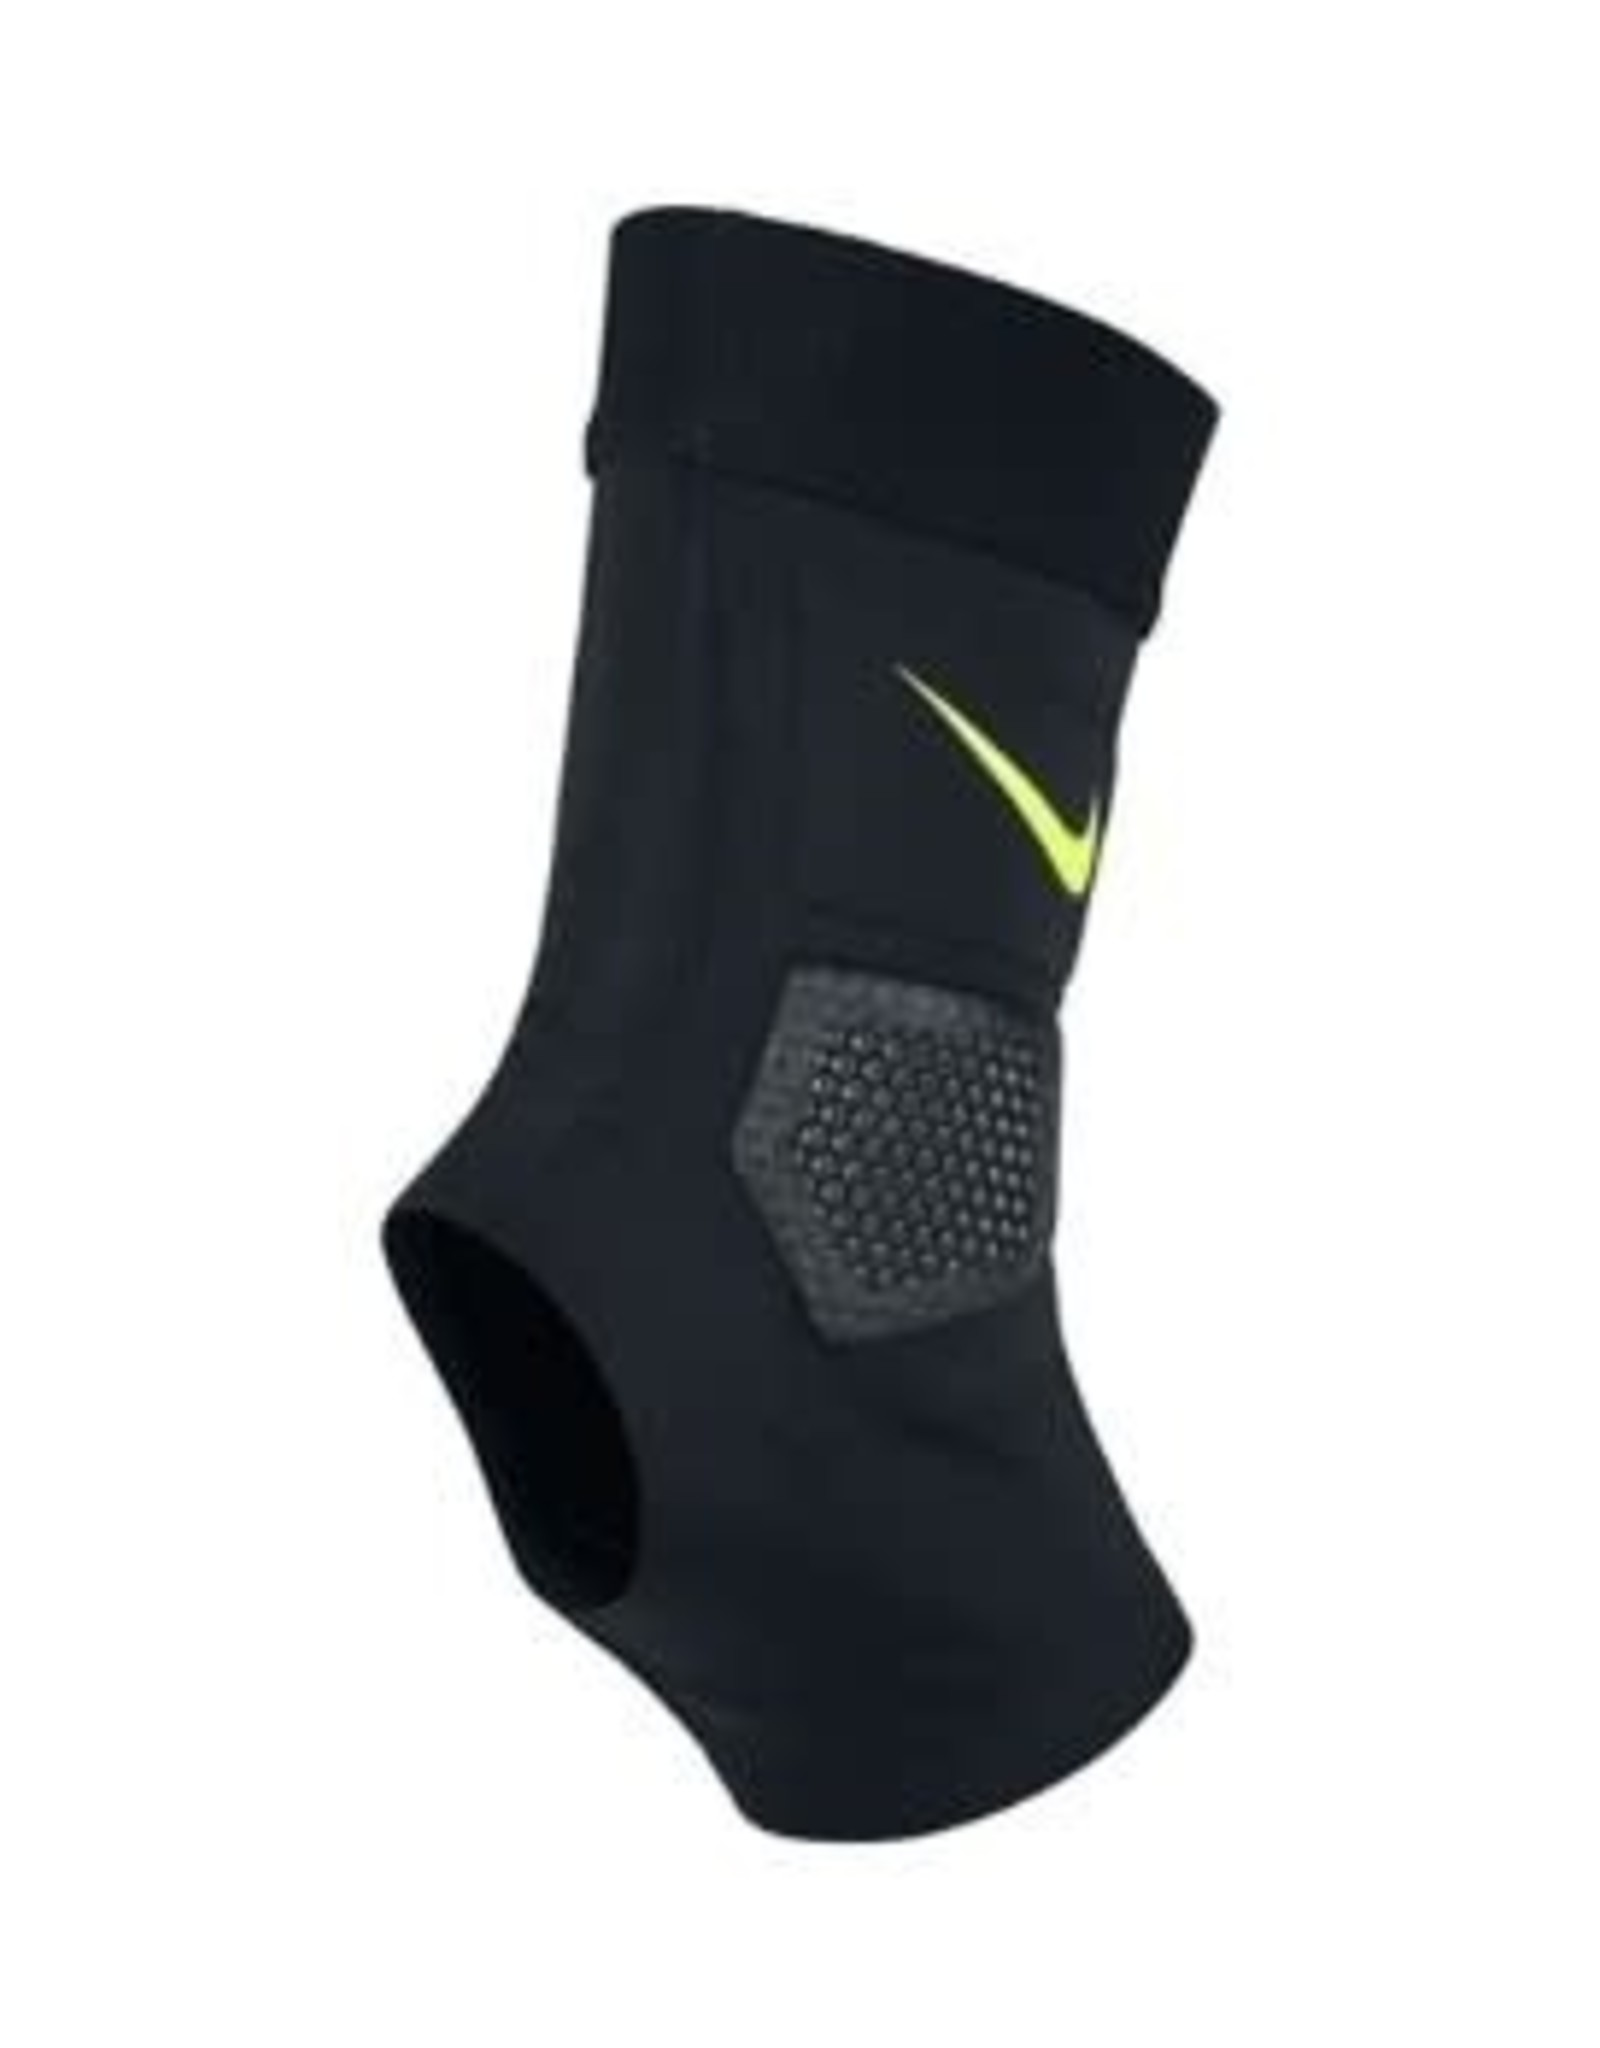 Nike Nike Match Ankle Guards